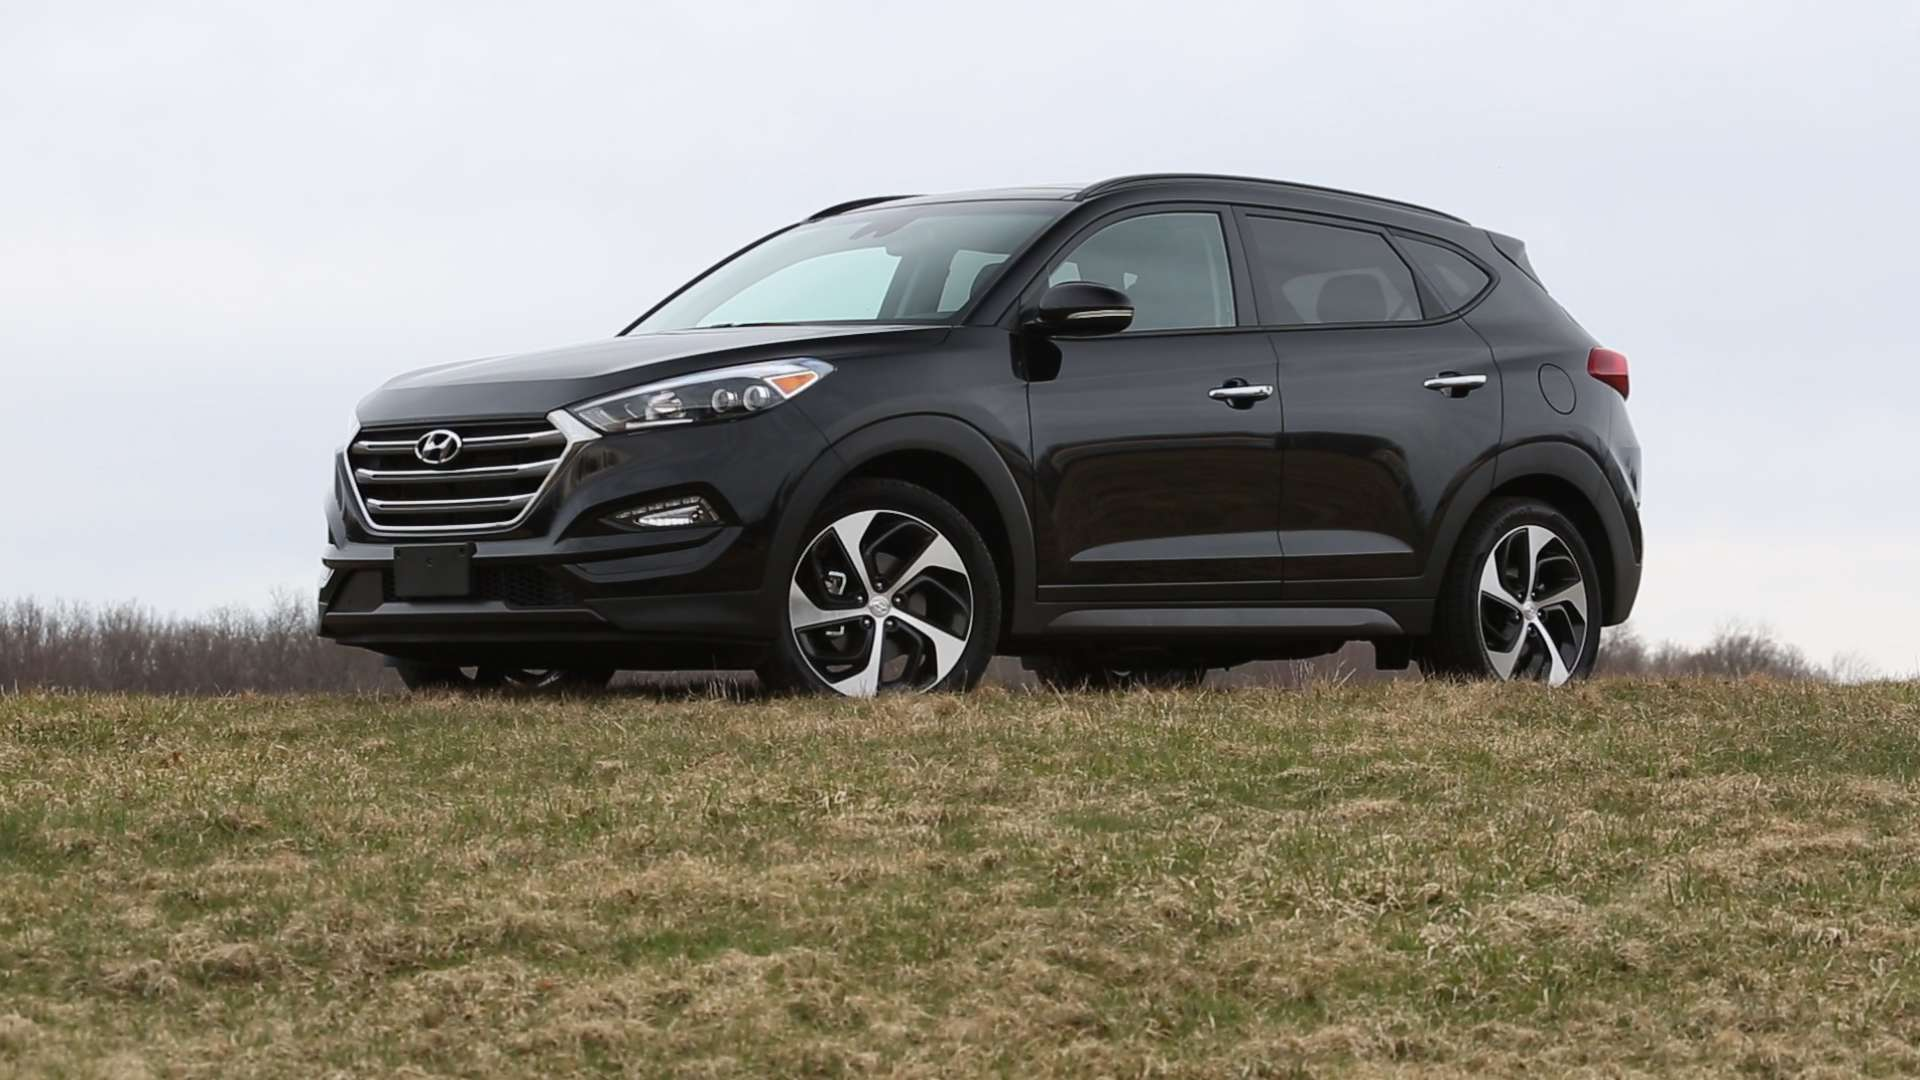 2016 Hyundai Tucson Reviews and Rating | Motor Trend |Orange Hyundai Tucson 2016